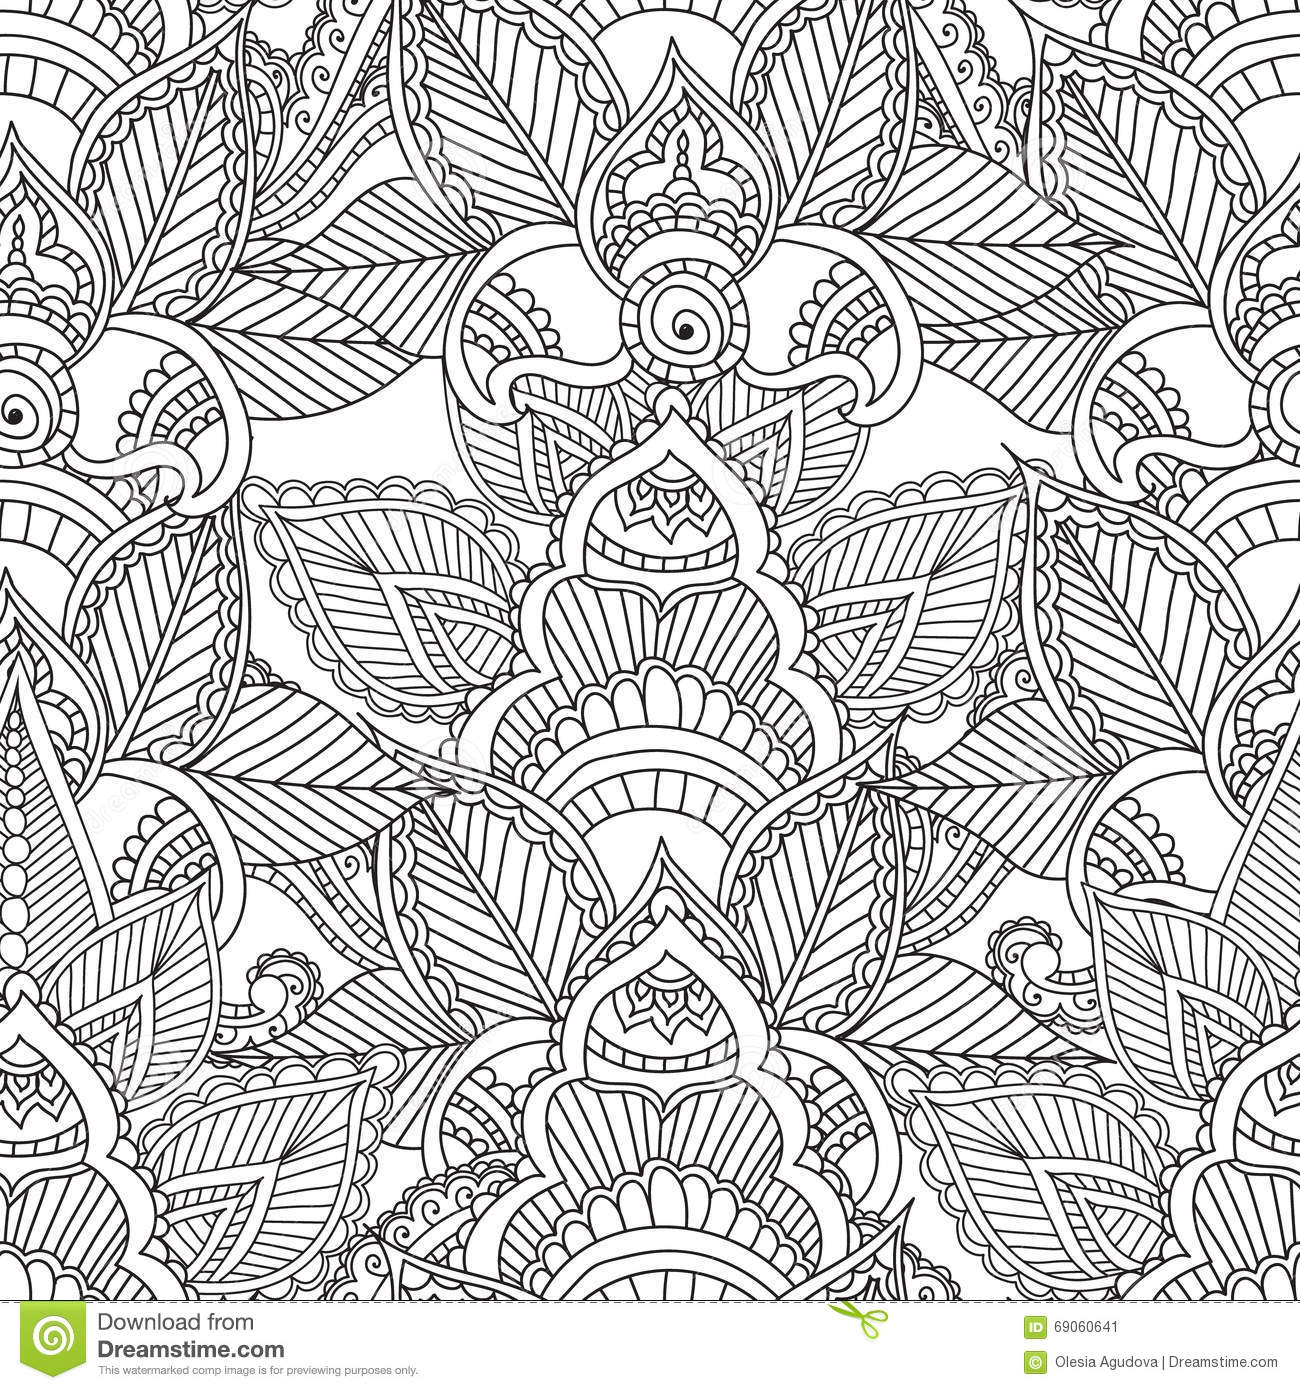 Coloring Pages For Adults Seamles Henna Mehndi Doodles Abstract Floral Elements Stock Vector Illustration Of Abstract Coloring 69060641